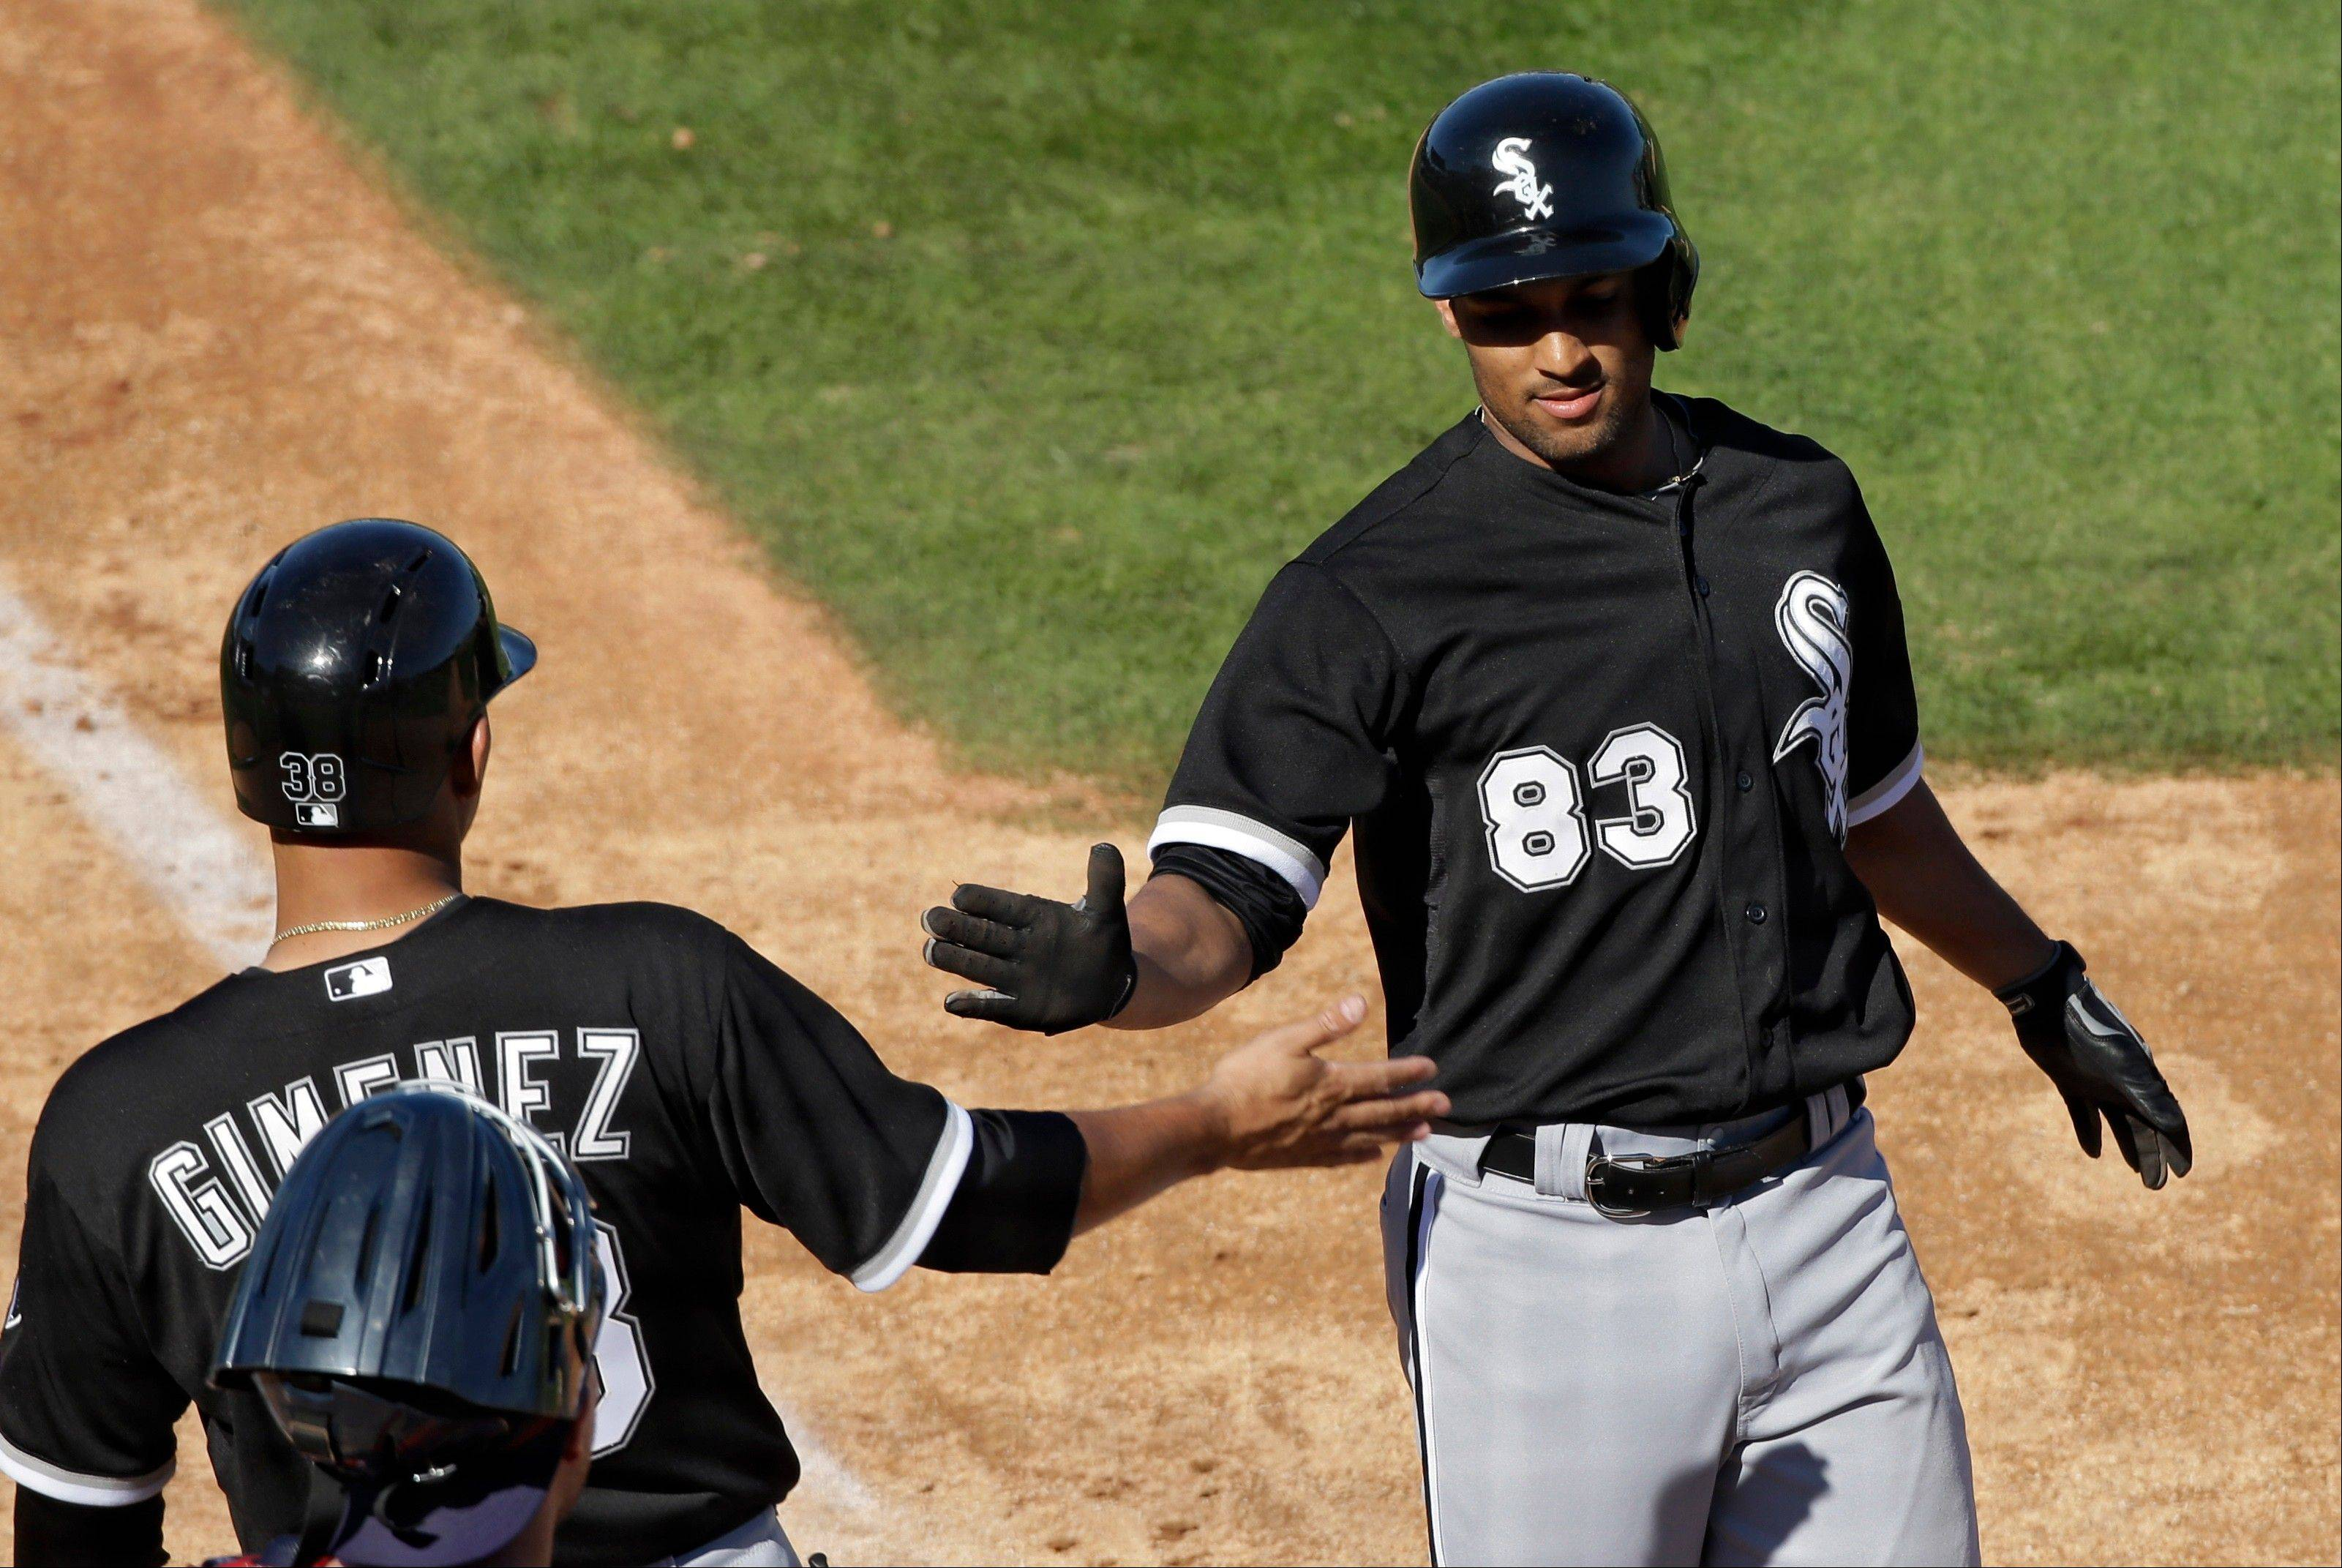 Chicago White Sox's Marcus Semien (83) is greeted at home by Hector Gimenez after hitting a 3-run home run off Cleveland Indians relief pitcher David Huff in the sixth inning of an exhibition spring training baseball game Friday, March 1, 2013, in Goodyear, Ariz. (AP Photo/Mark Duncan)